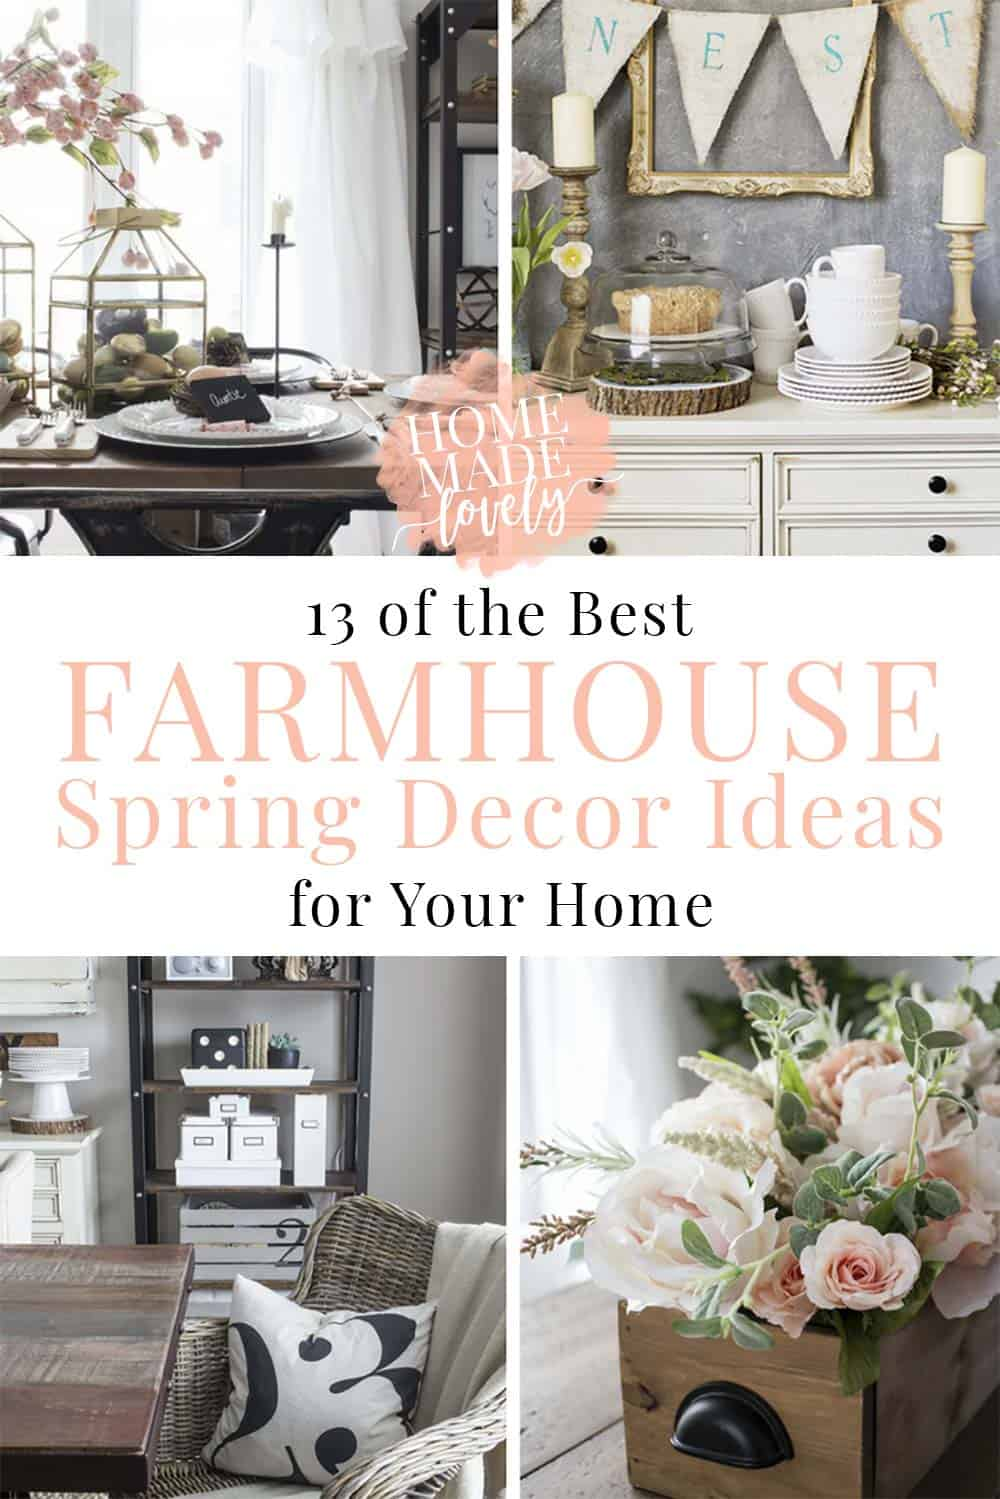 13 Of The Best Farmhouse Spring Decor Ideas For Your Home